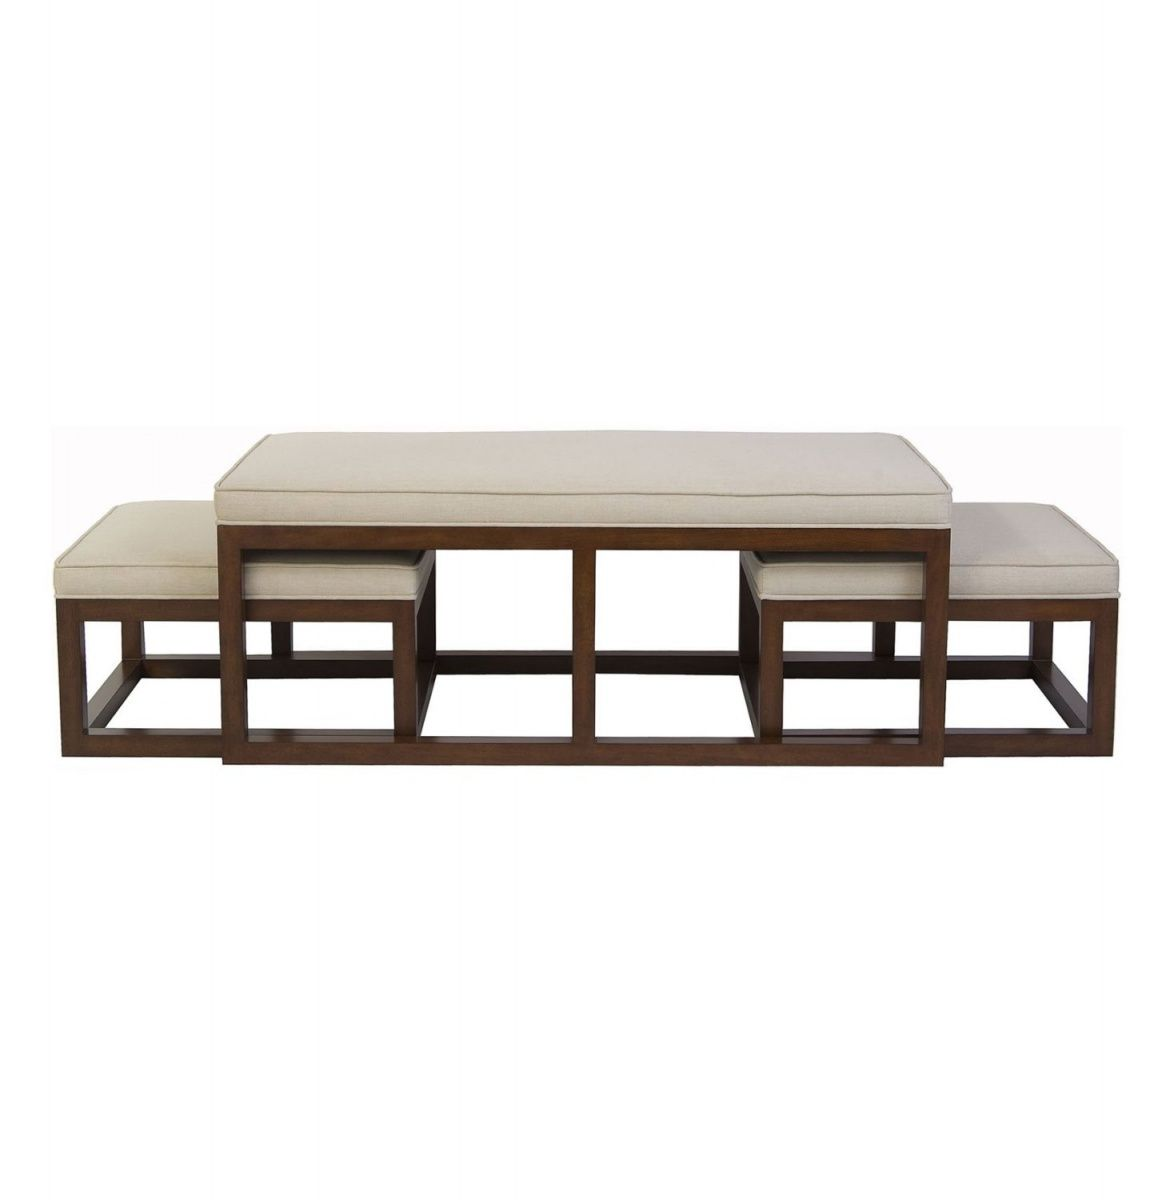 Extra Large Leather Ottoman Coffee Table | Furniture | Pinterest